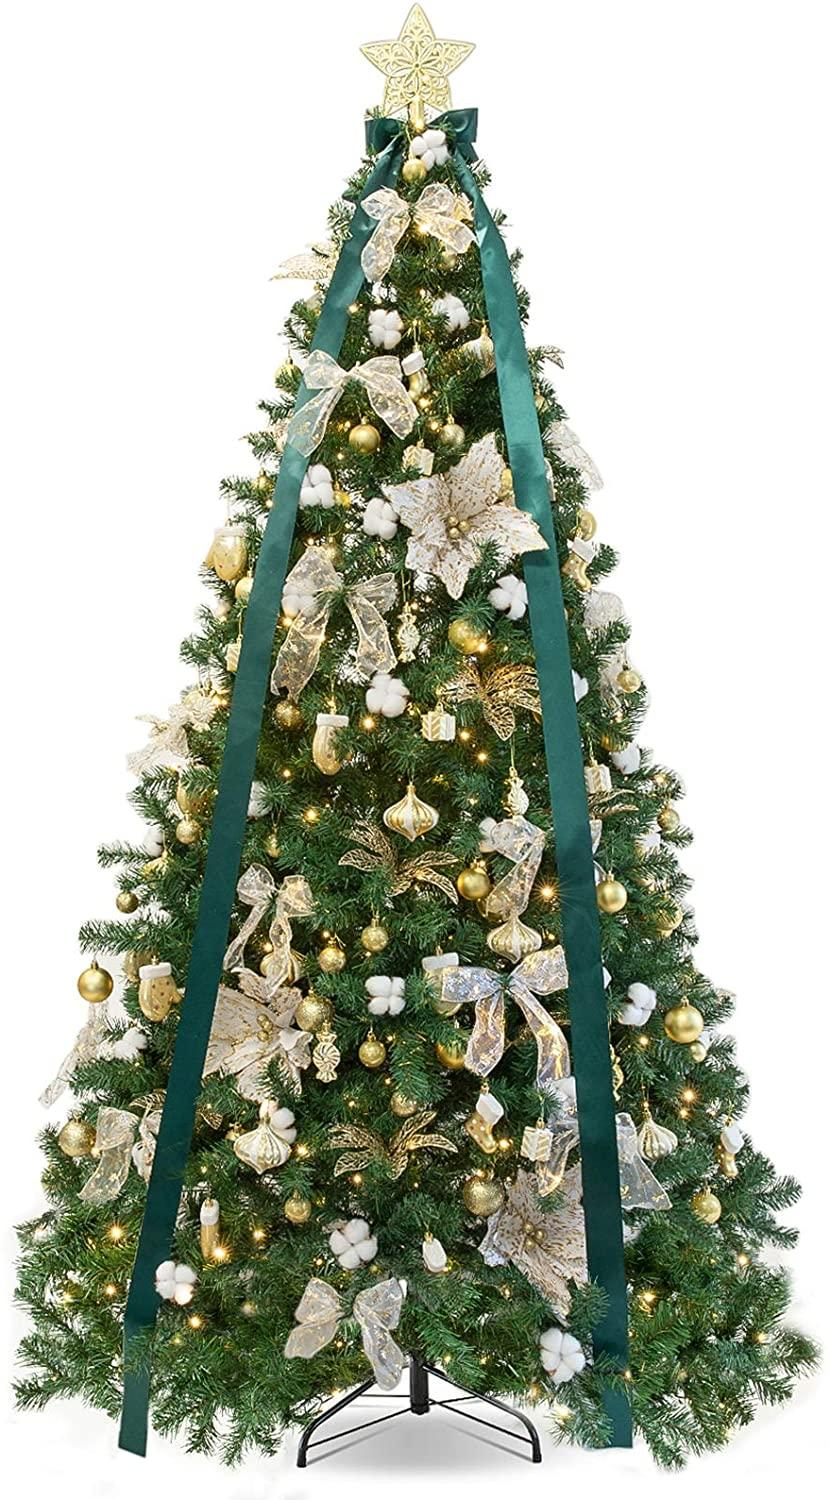 WBHome 6FT Pre-lit Artificial Christmas Tree with Ornaments. (Image via Amazon)